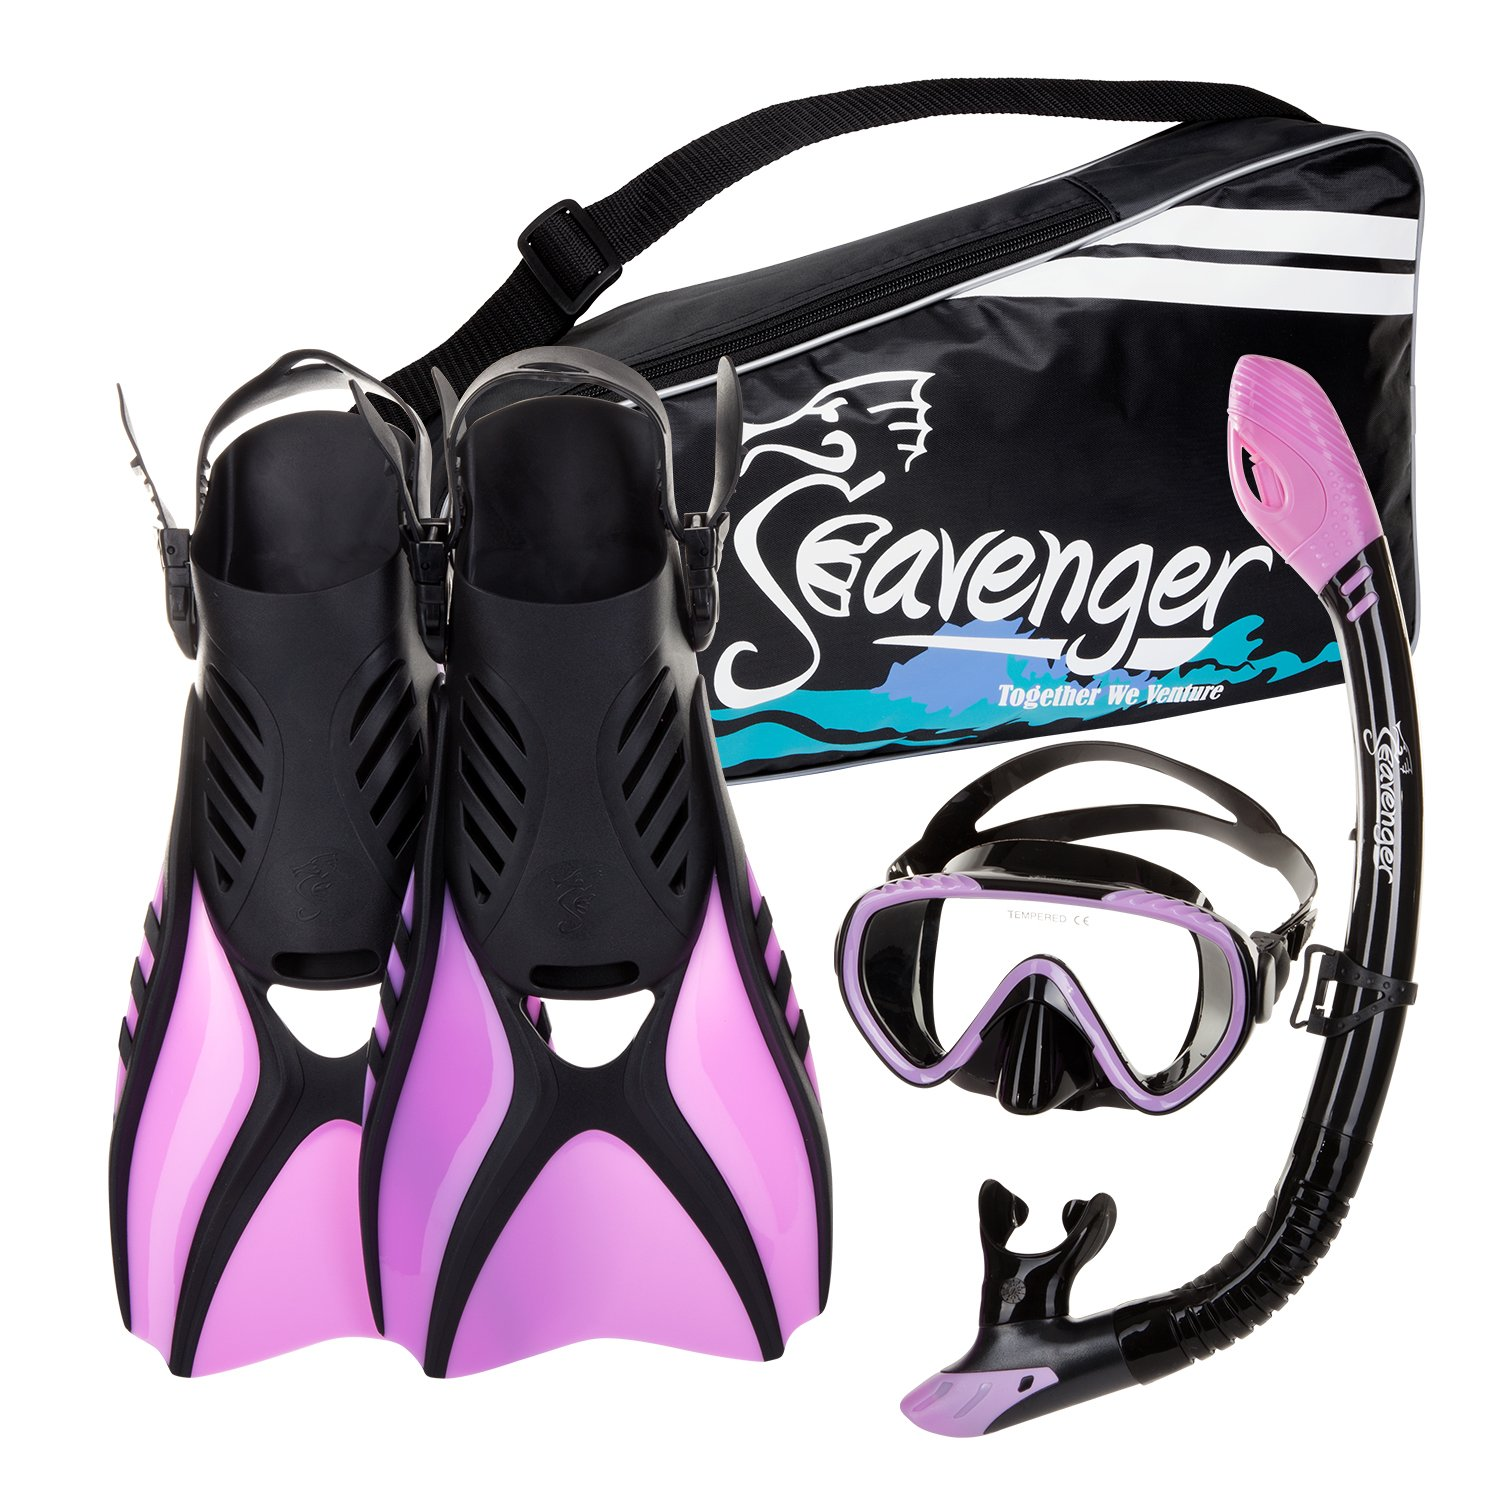 Seavenger Advanced Snorkeling Set with Panoramic Mask, Trek Fins, Dry Top Snorkel & Gear Bag (Black Silicone/Purple, X-Small)